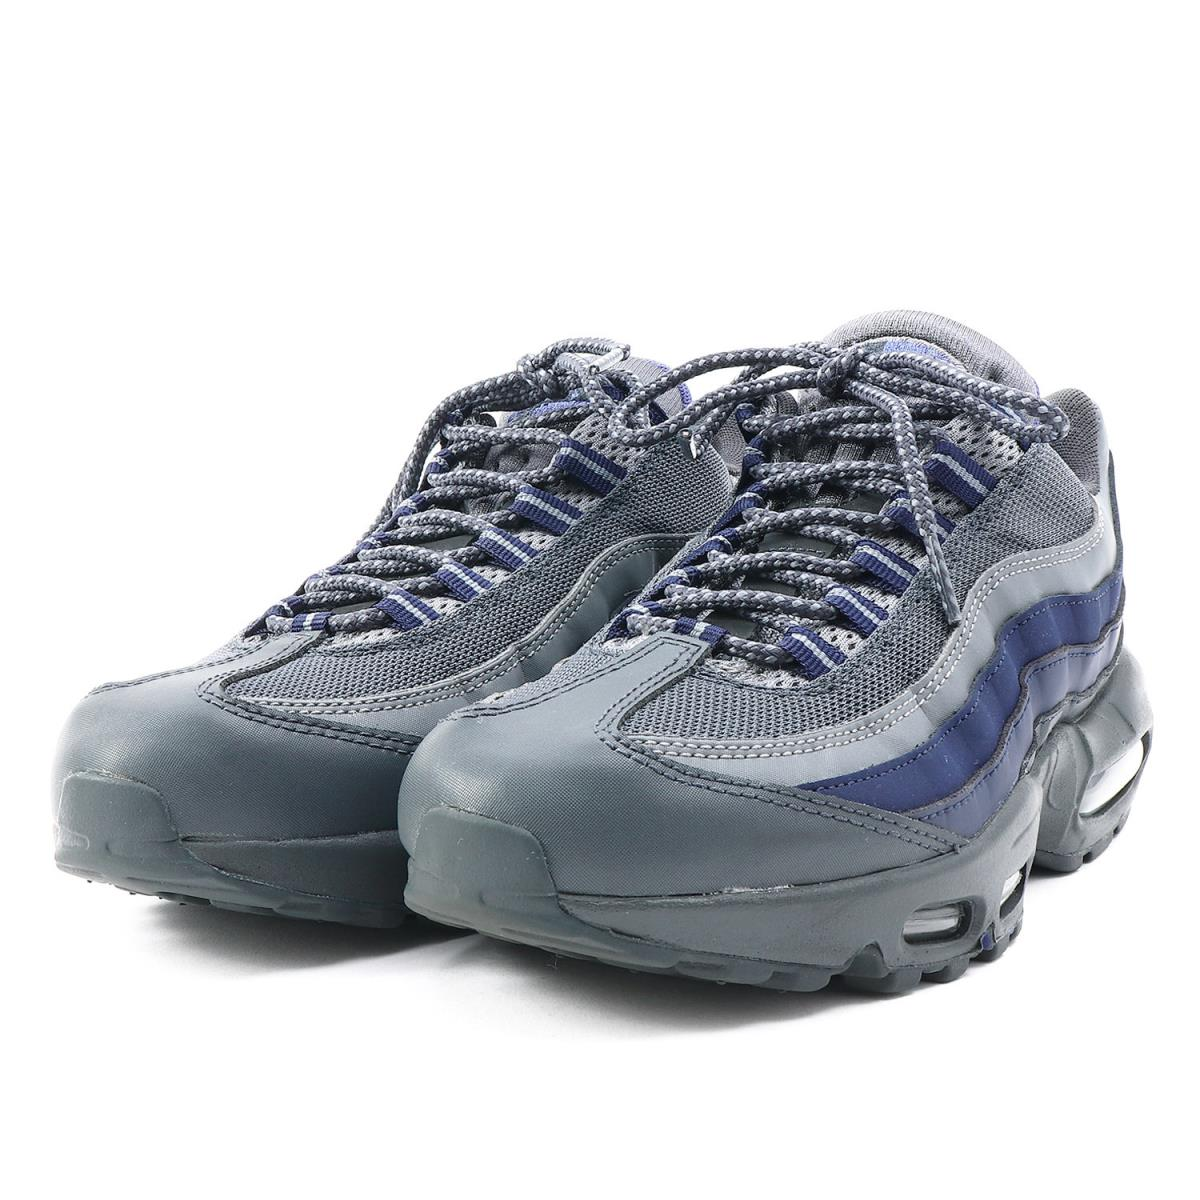 best website 07a21 86827 NIKE (Nike) AIR MAX 95 ESSENTIAL (749,766-011) アンスラサイト X Paramount blue  US8(26cm)